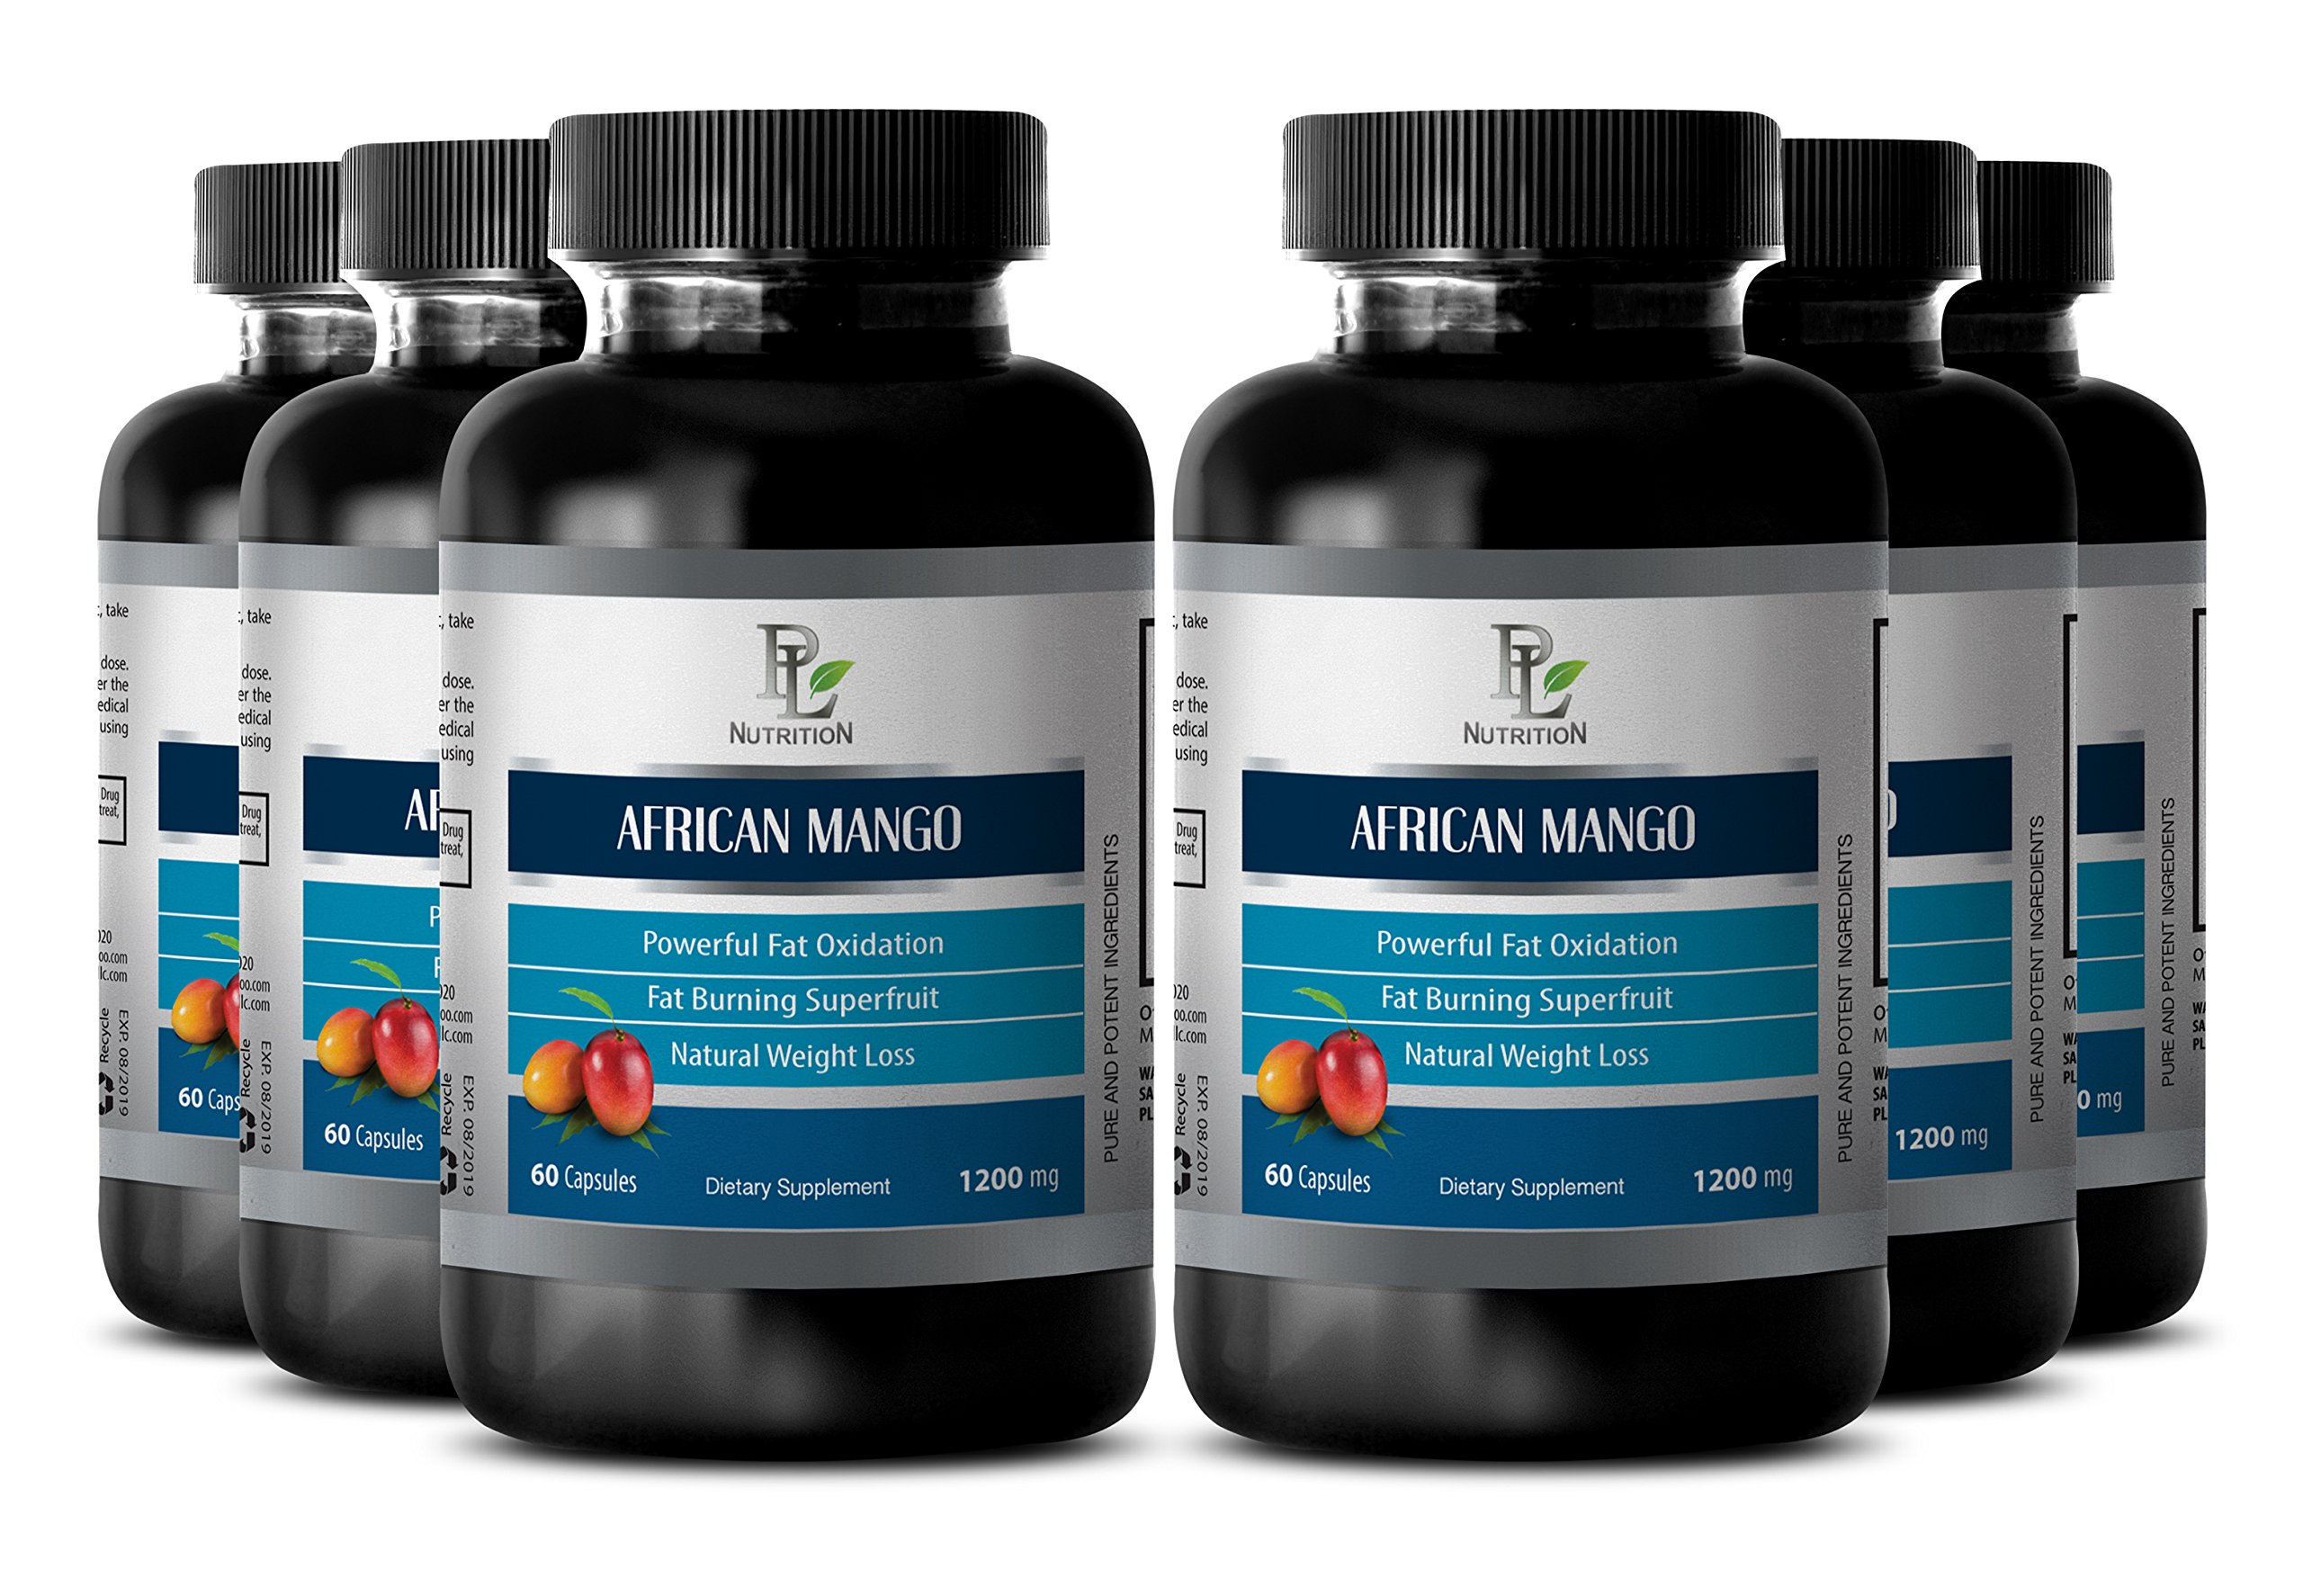 Beta-carotene powder - AFRICAN MANGO EXTRACT - Promotes muscular development - 6 Bottles 360 capsules